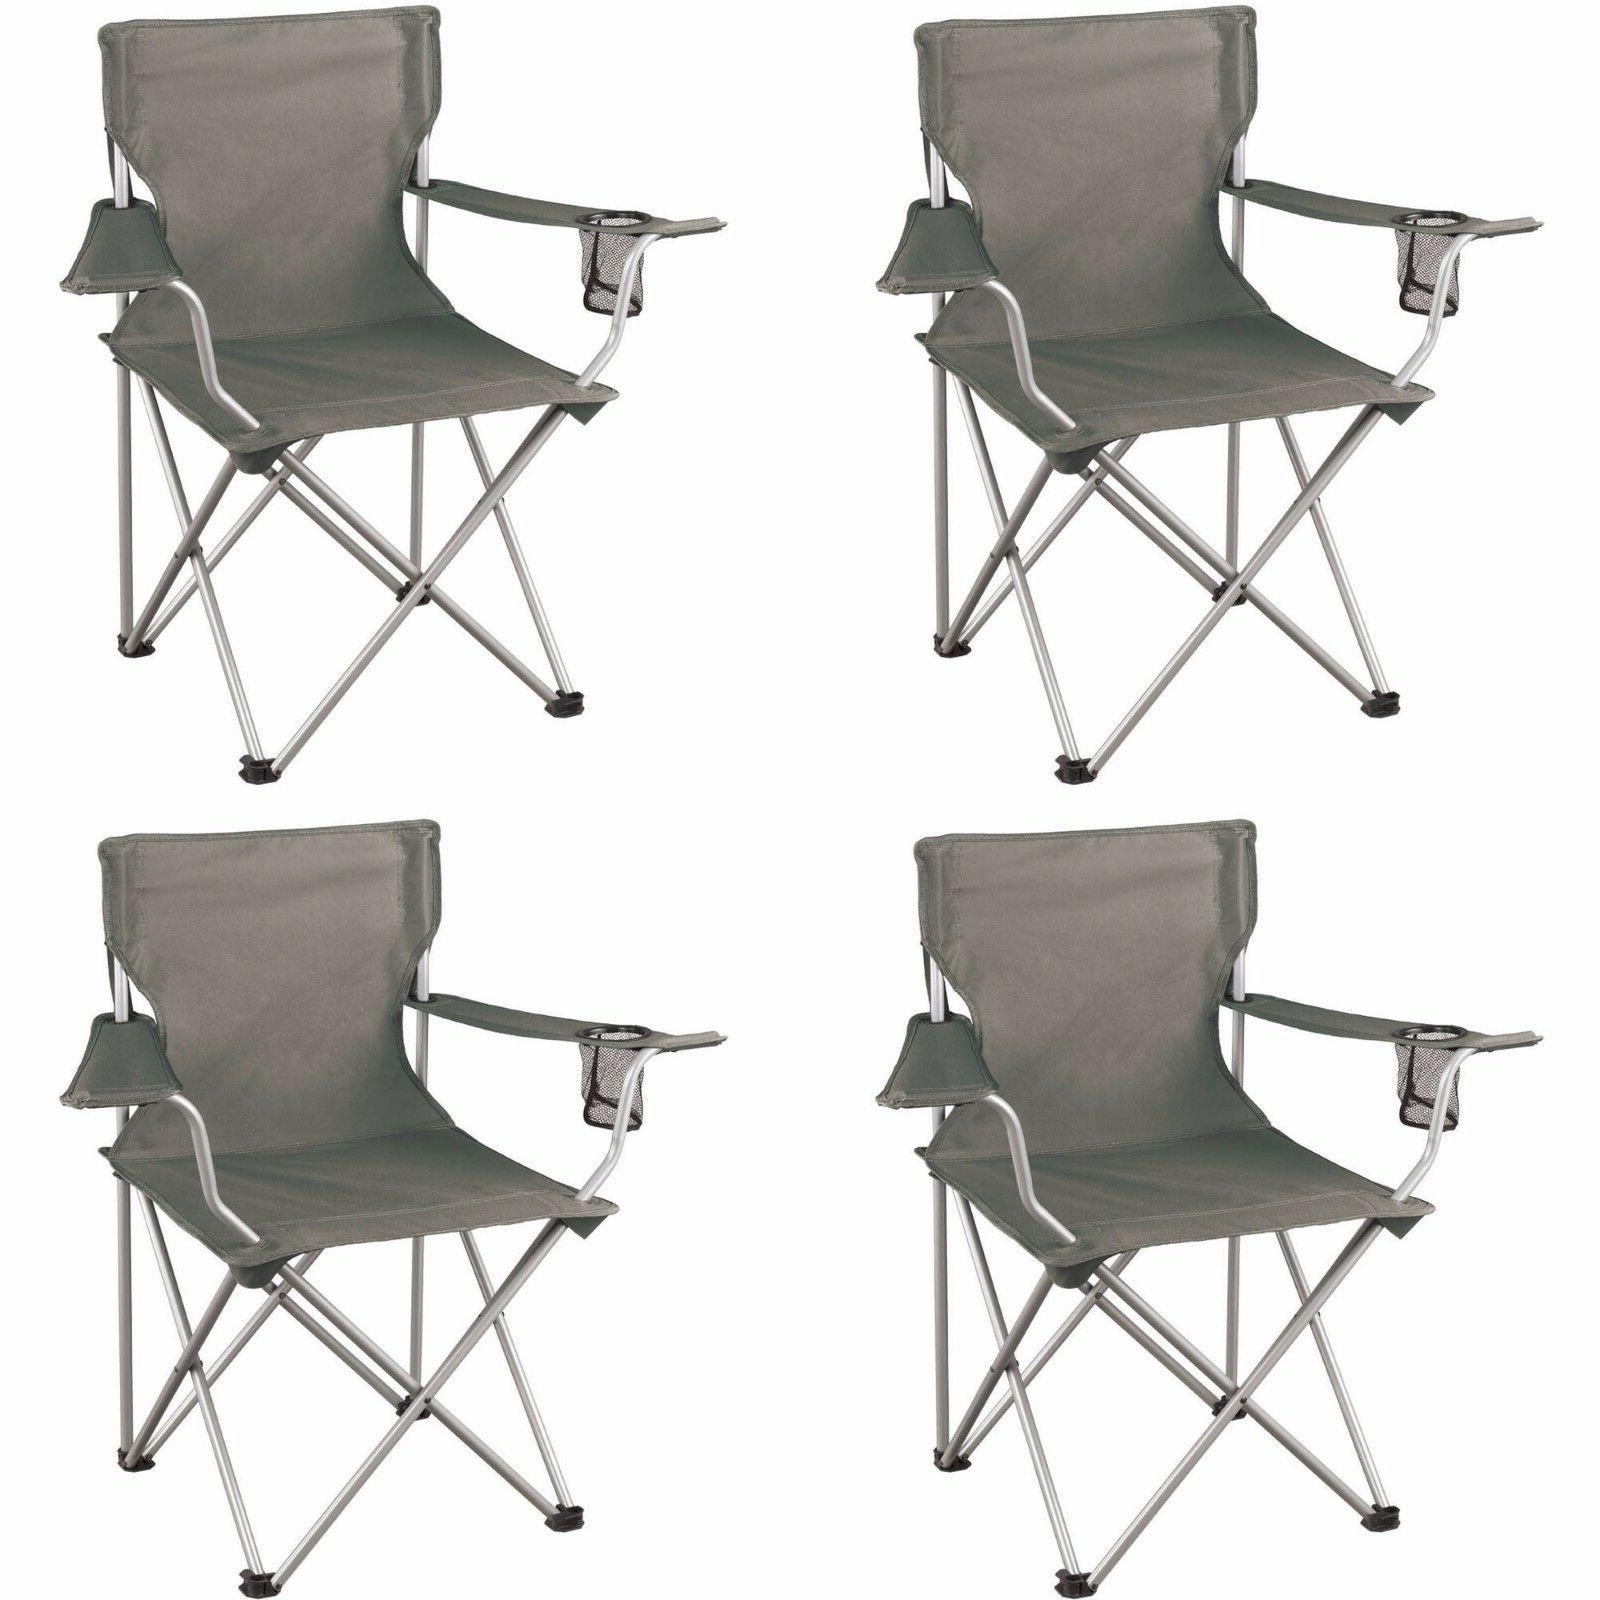 4 Heavy Camp Seat 225LBS